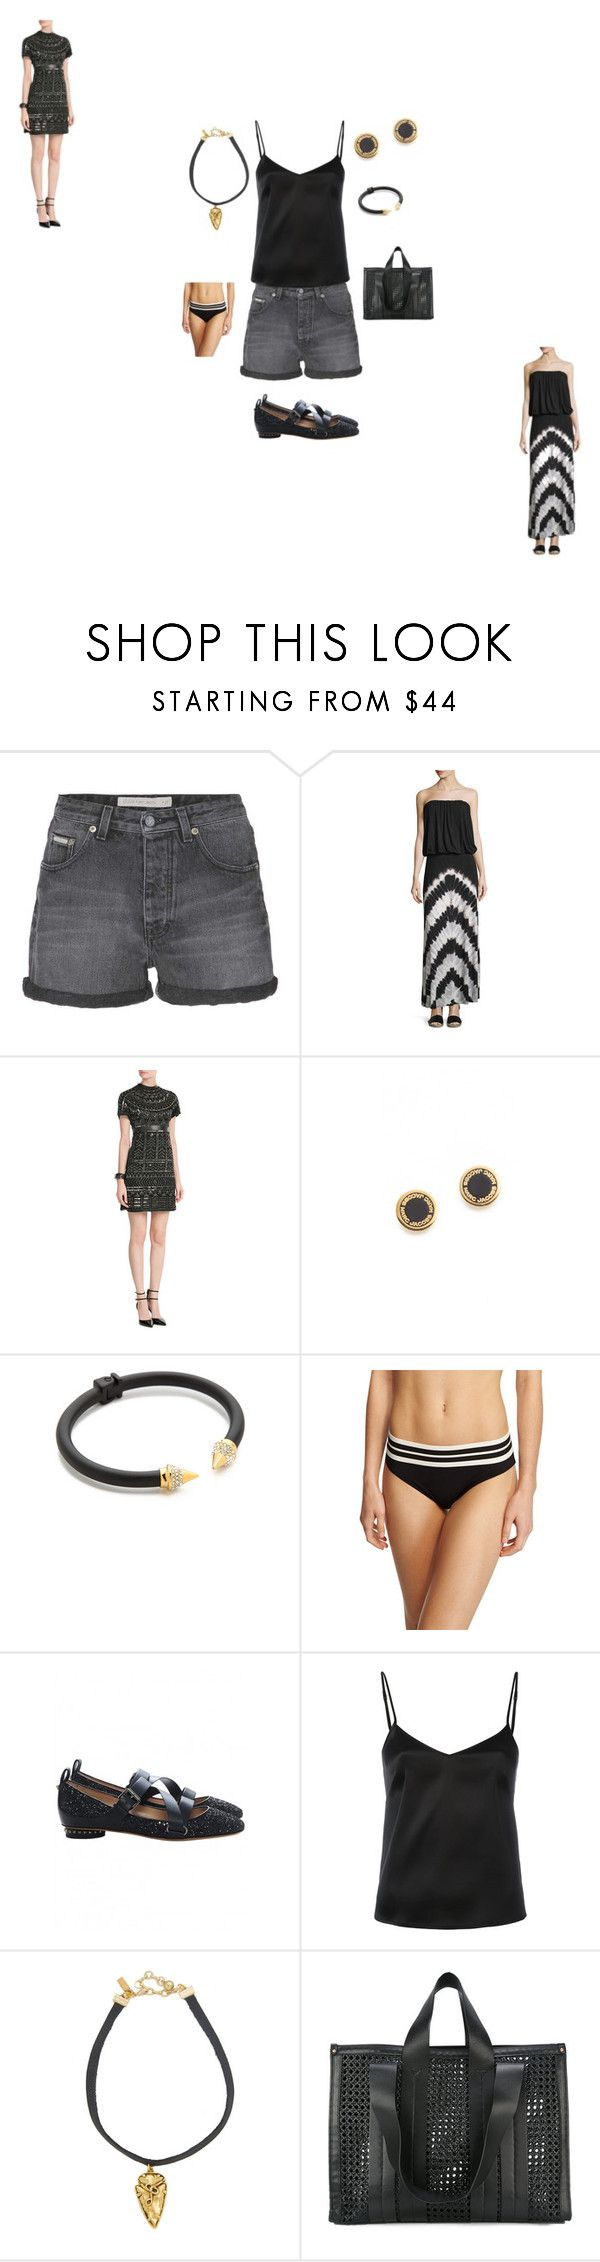 """satchel dress"" by ramakumari ❤ liked on Polyvore featuring Calvin Klein Jeans, Young, Fabulous & Broke, Lynn Ban, Marc Jacobs, Vita Fede, Karla Colletto, Valentino, La Perla, Vanessa Mooney and Corto Moltedo"